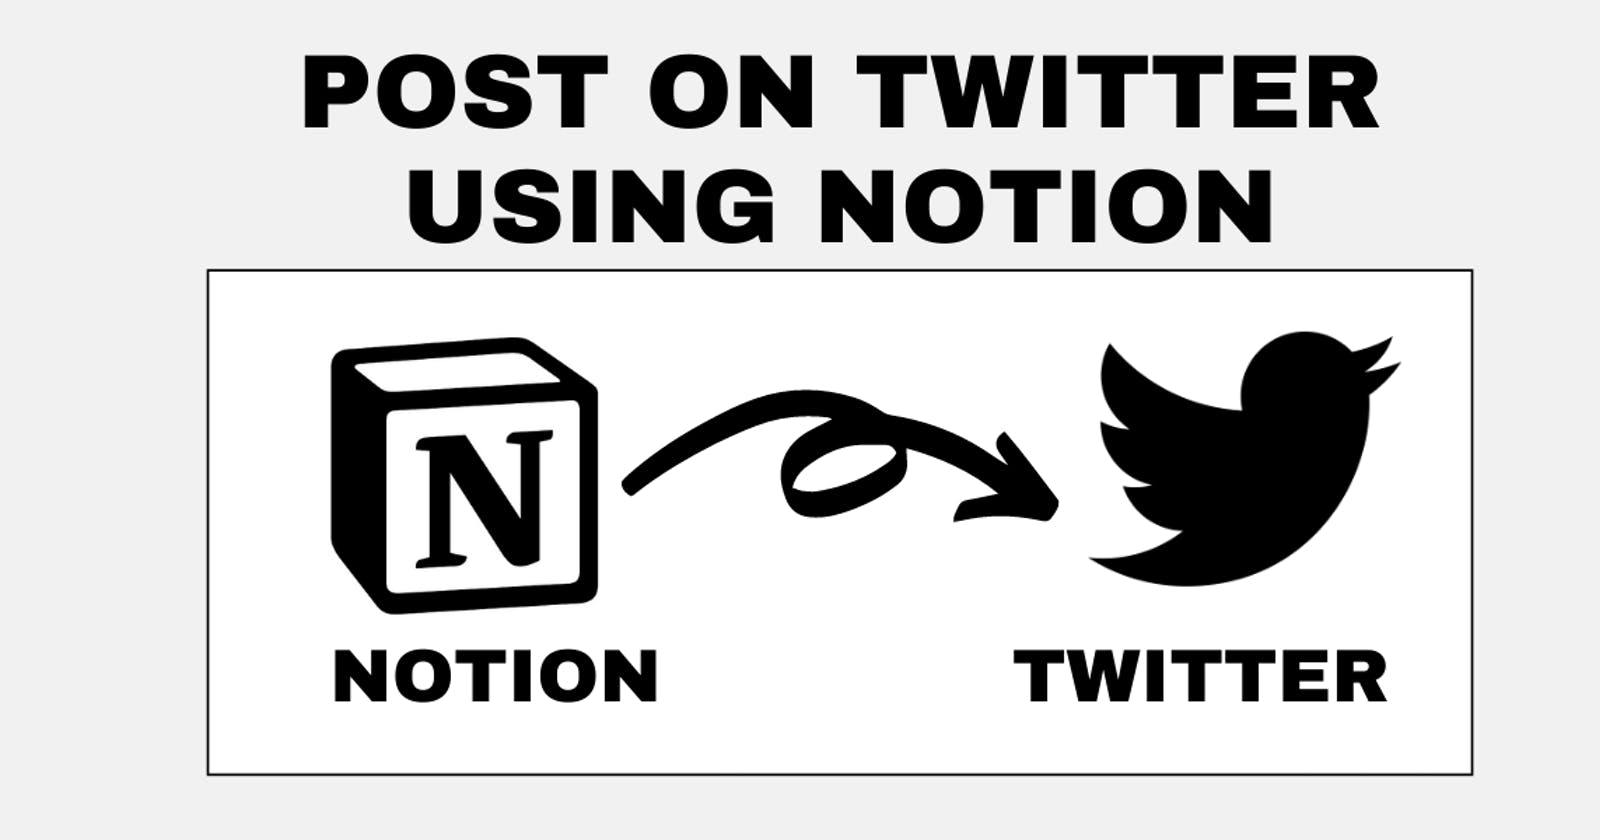 Post on Twitter using Notion